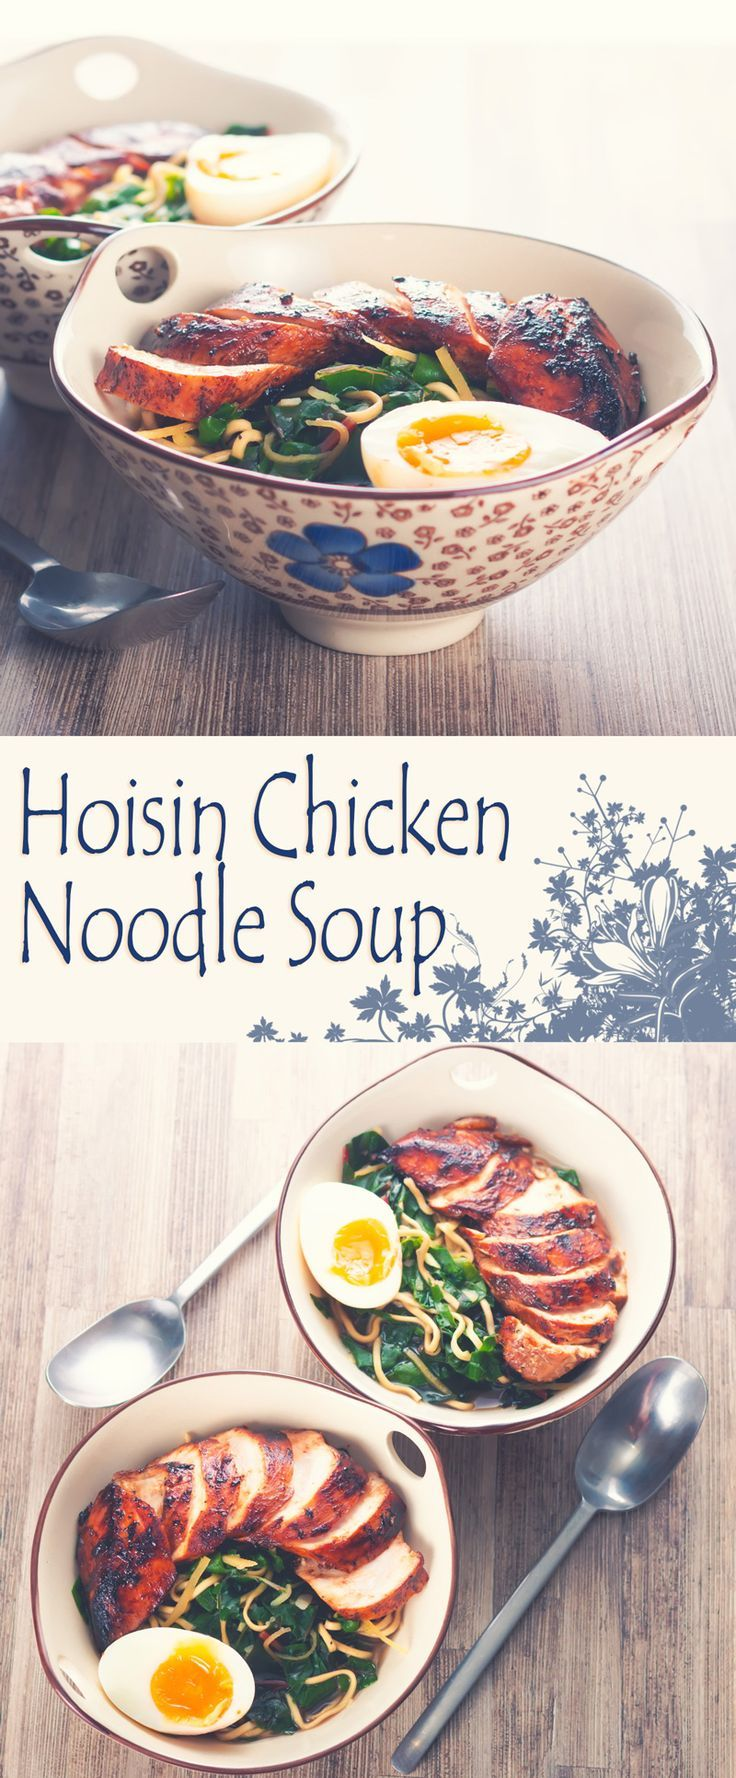 Hoisin Chicken Noodle Soup Recipe: This dish is a bit of an homage to Wagamama a place I liked for quick and simple food in the UK, an Asian inspired hoisin chicken breast in a simple broth #NoodleRecipes #NoodleSoup #asianfood #soup #souprecipe #soupoftheday #ramen #recipe #recipeoftheday #comfortfood